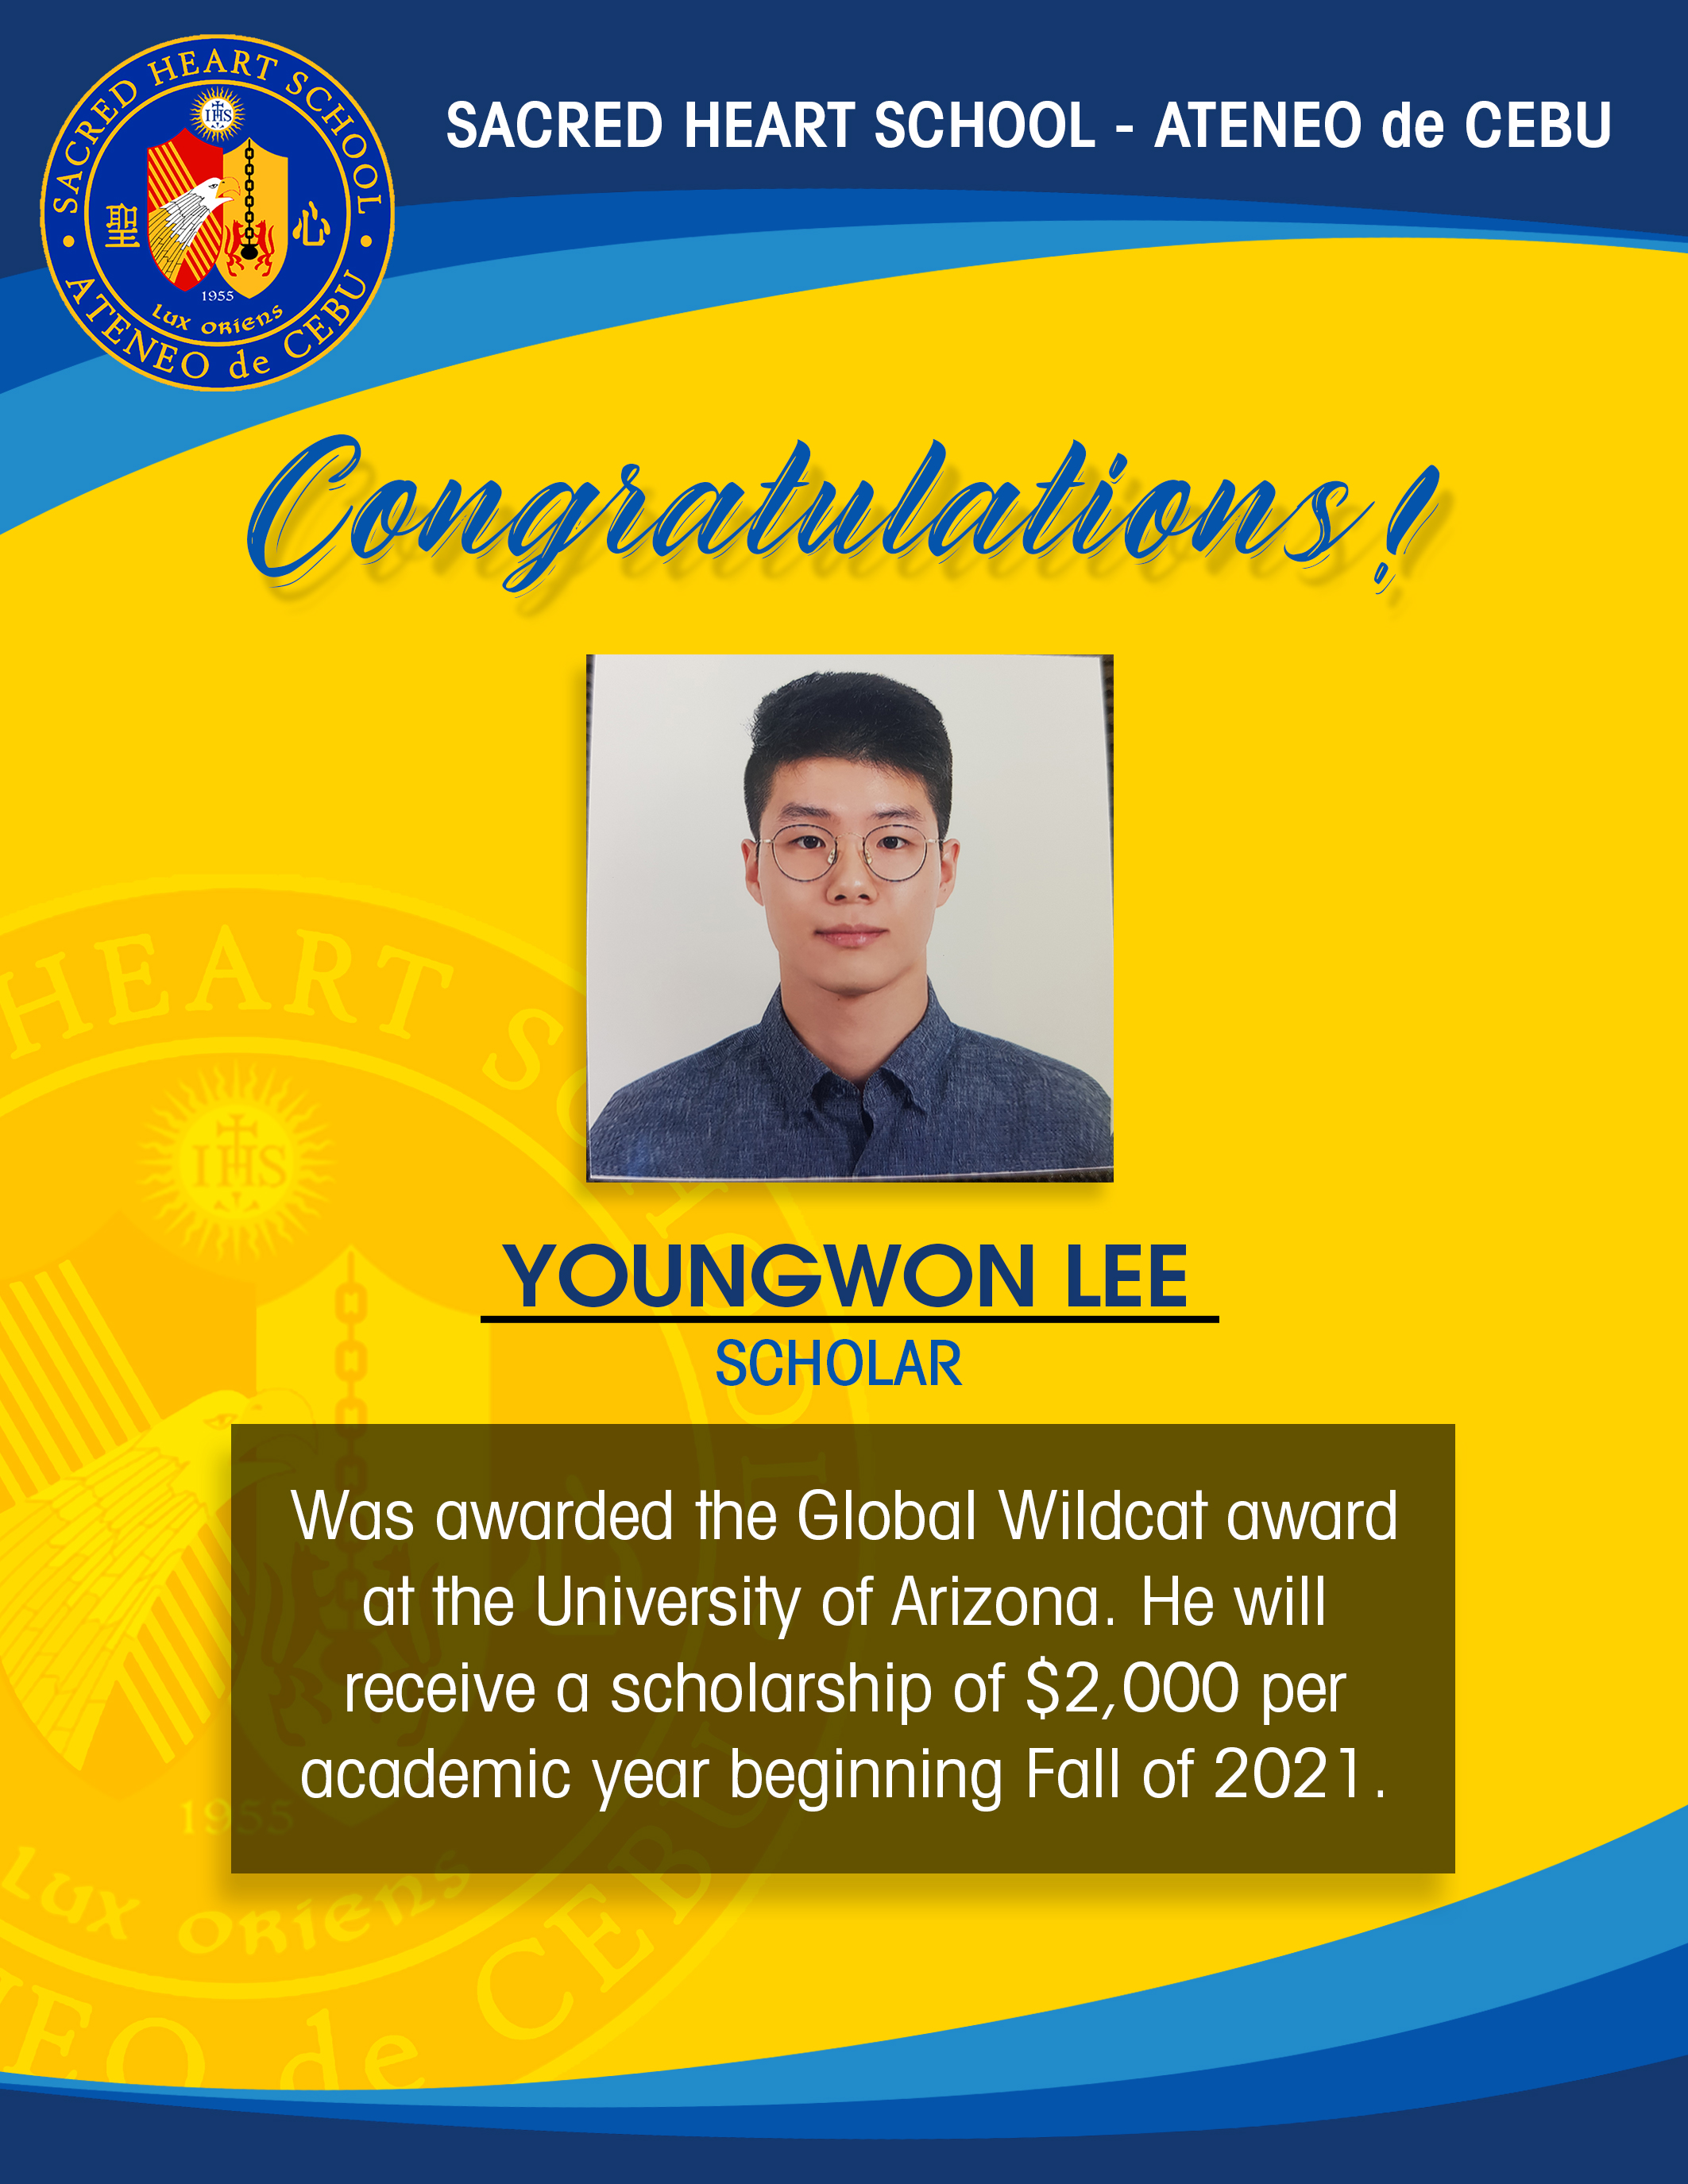 Youngwon Lee